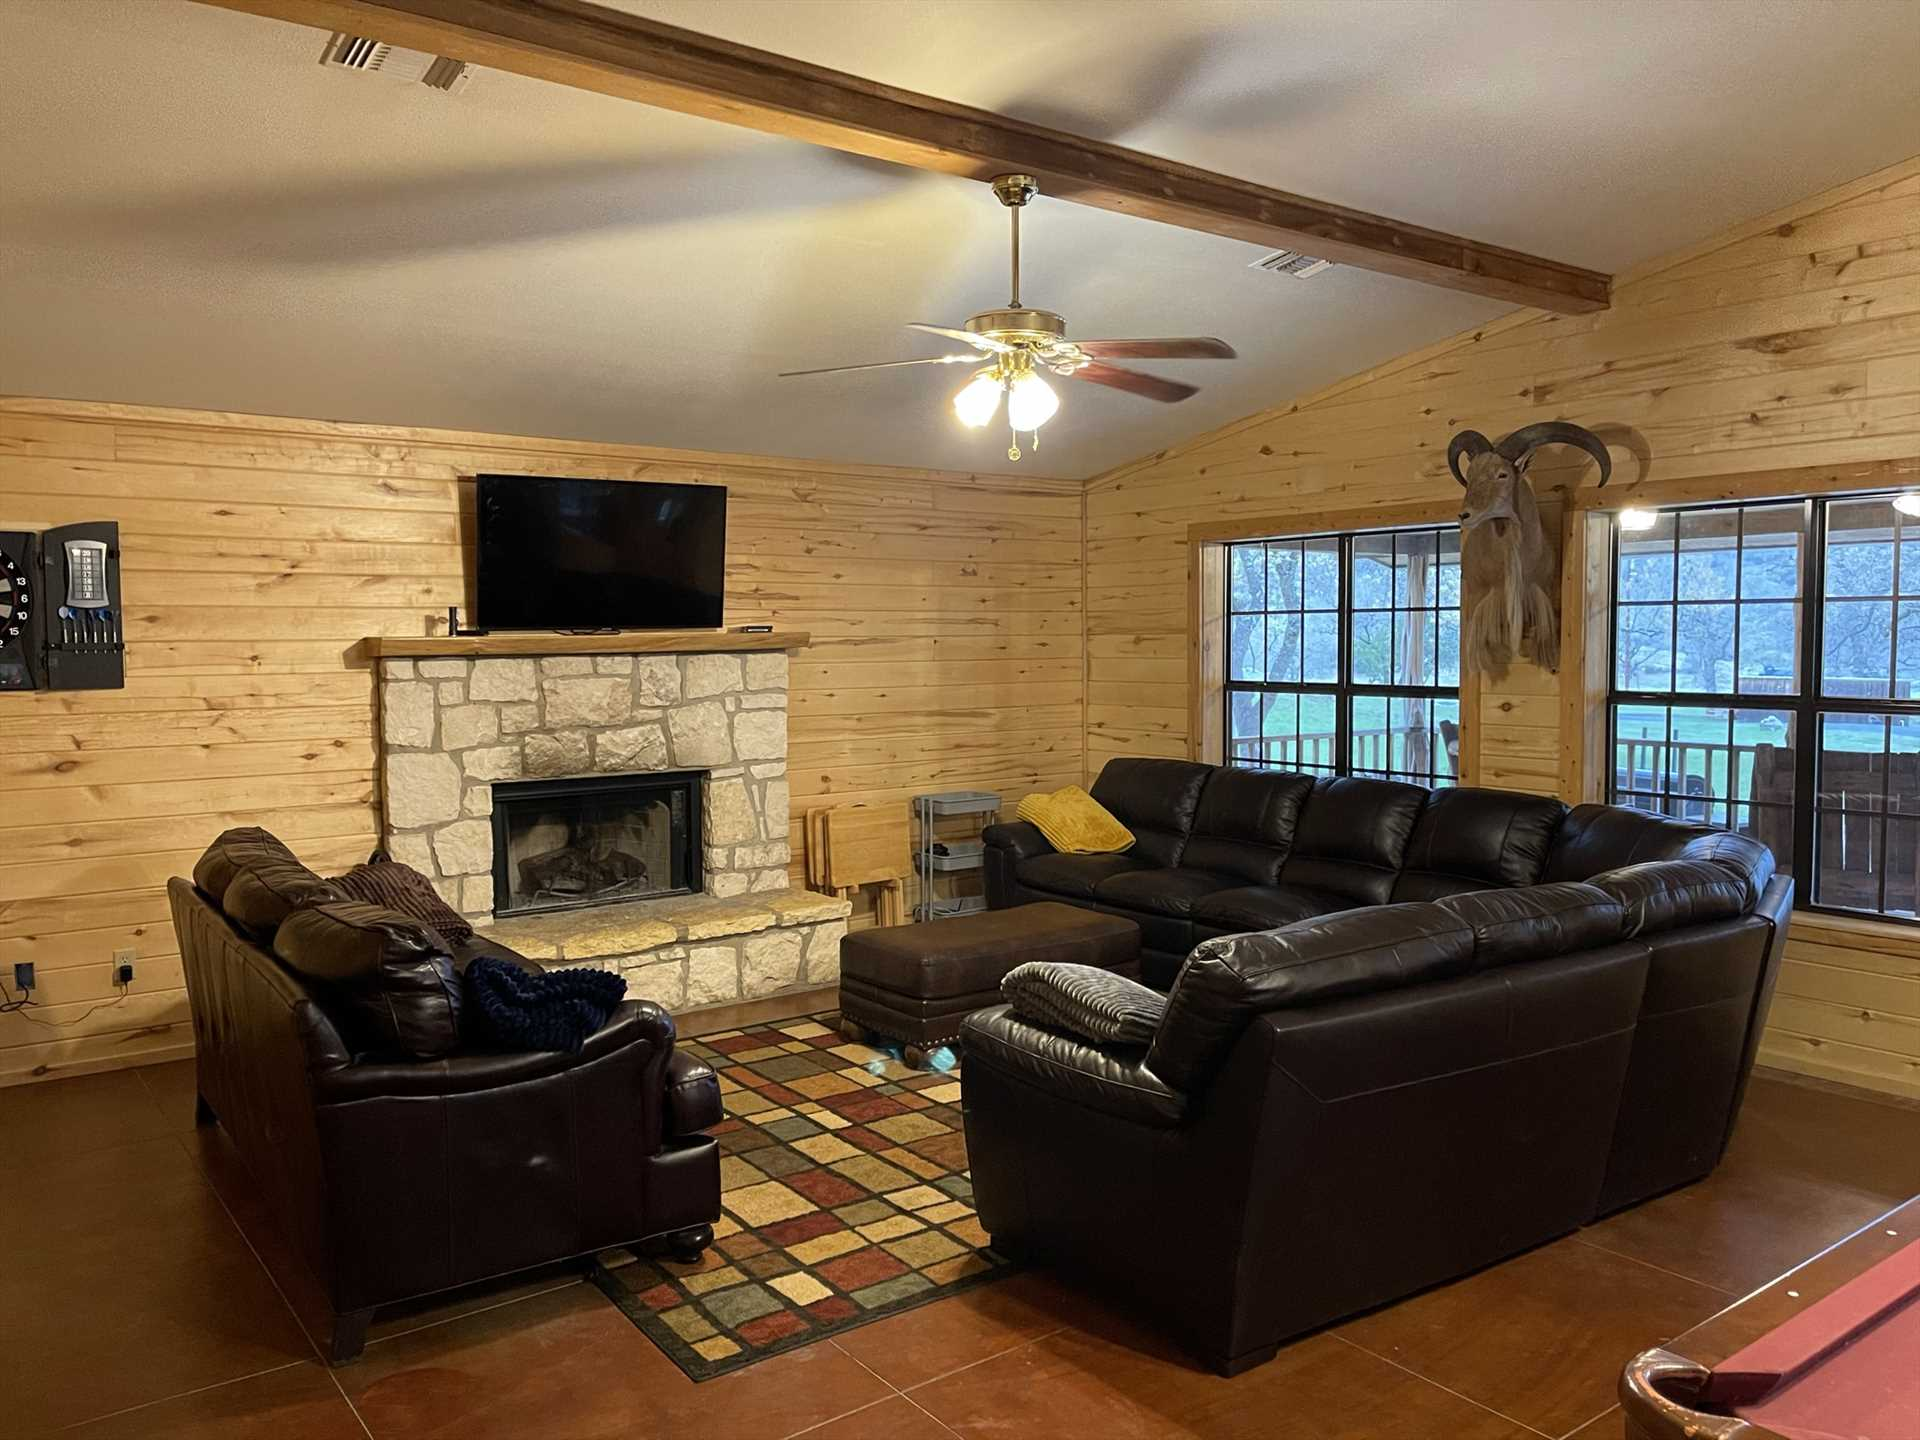 The Lodge features sleeping accommodations for up to 20 guests, and the living area gives each and every one of them room to stretch their legs, too.